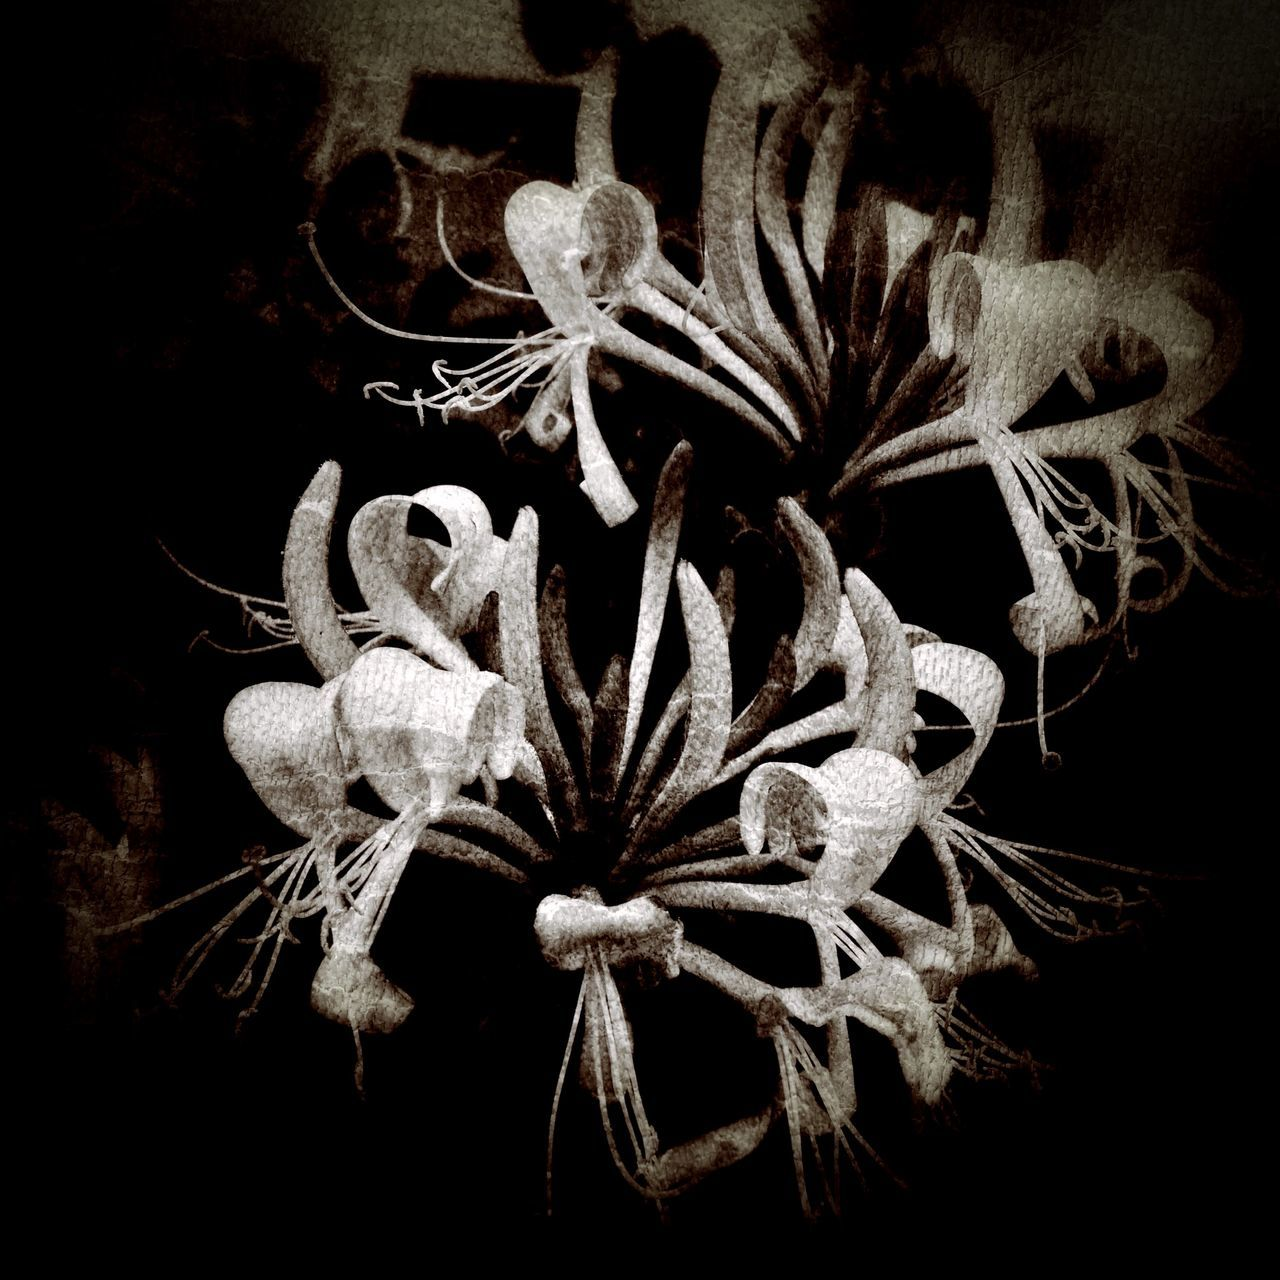 night, close-up, black background, no people, flower, plant, flower head, nature, indoors, fragility, beauty in nature